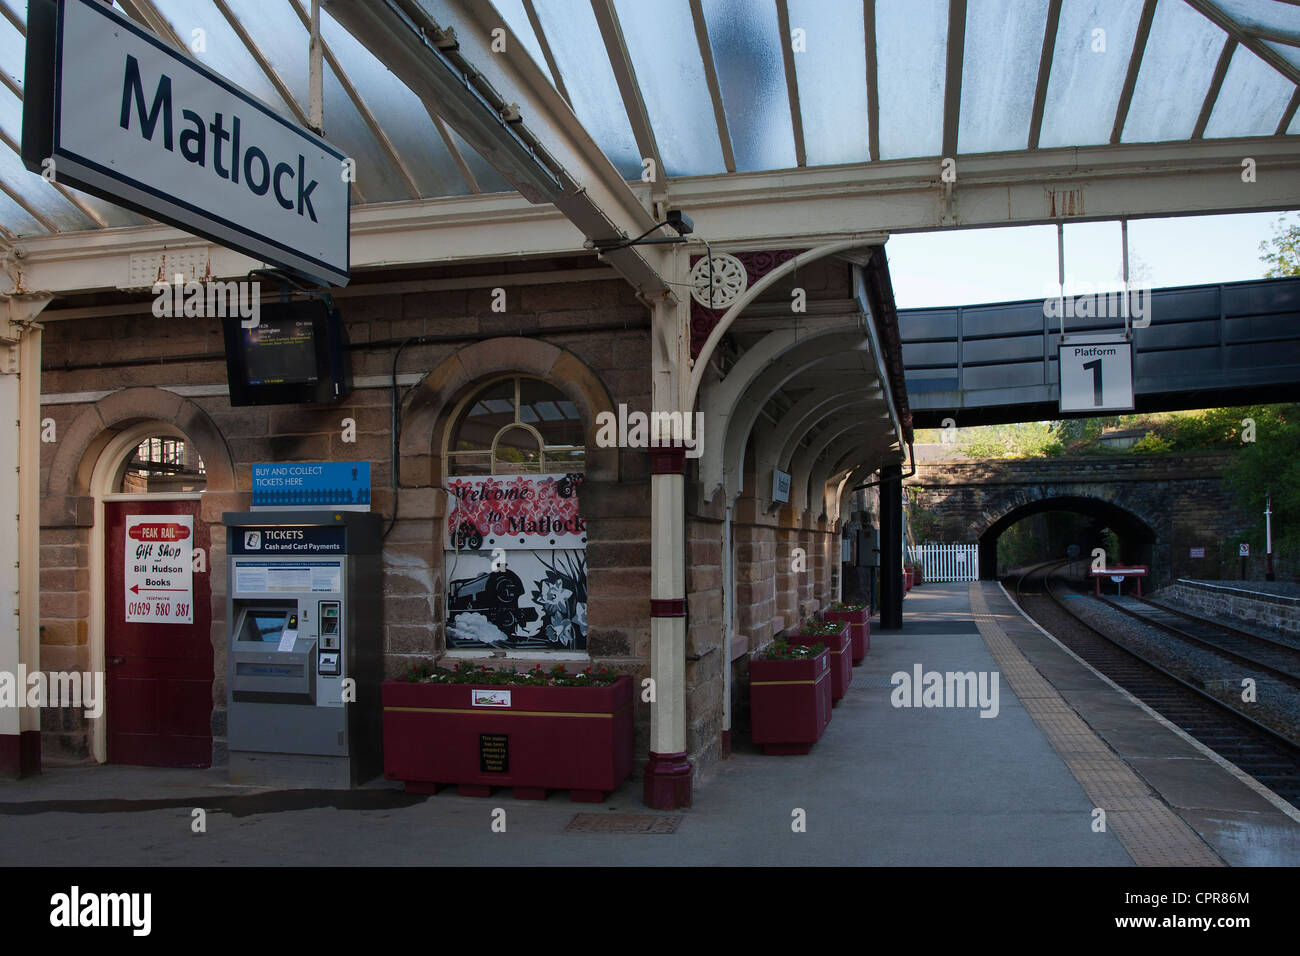 Matlock Train Station, Matlock, Derbyshire, Peak District, England, UK - Stock Image